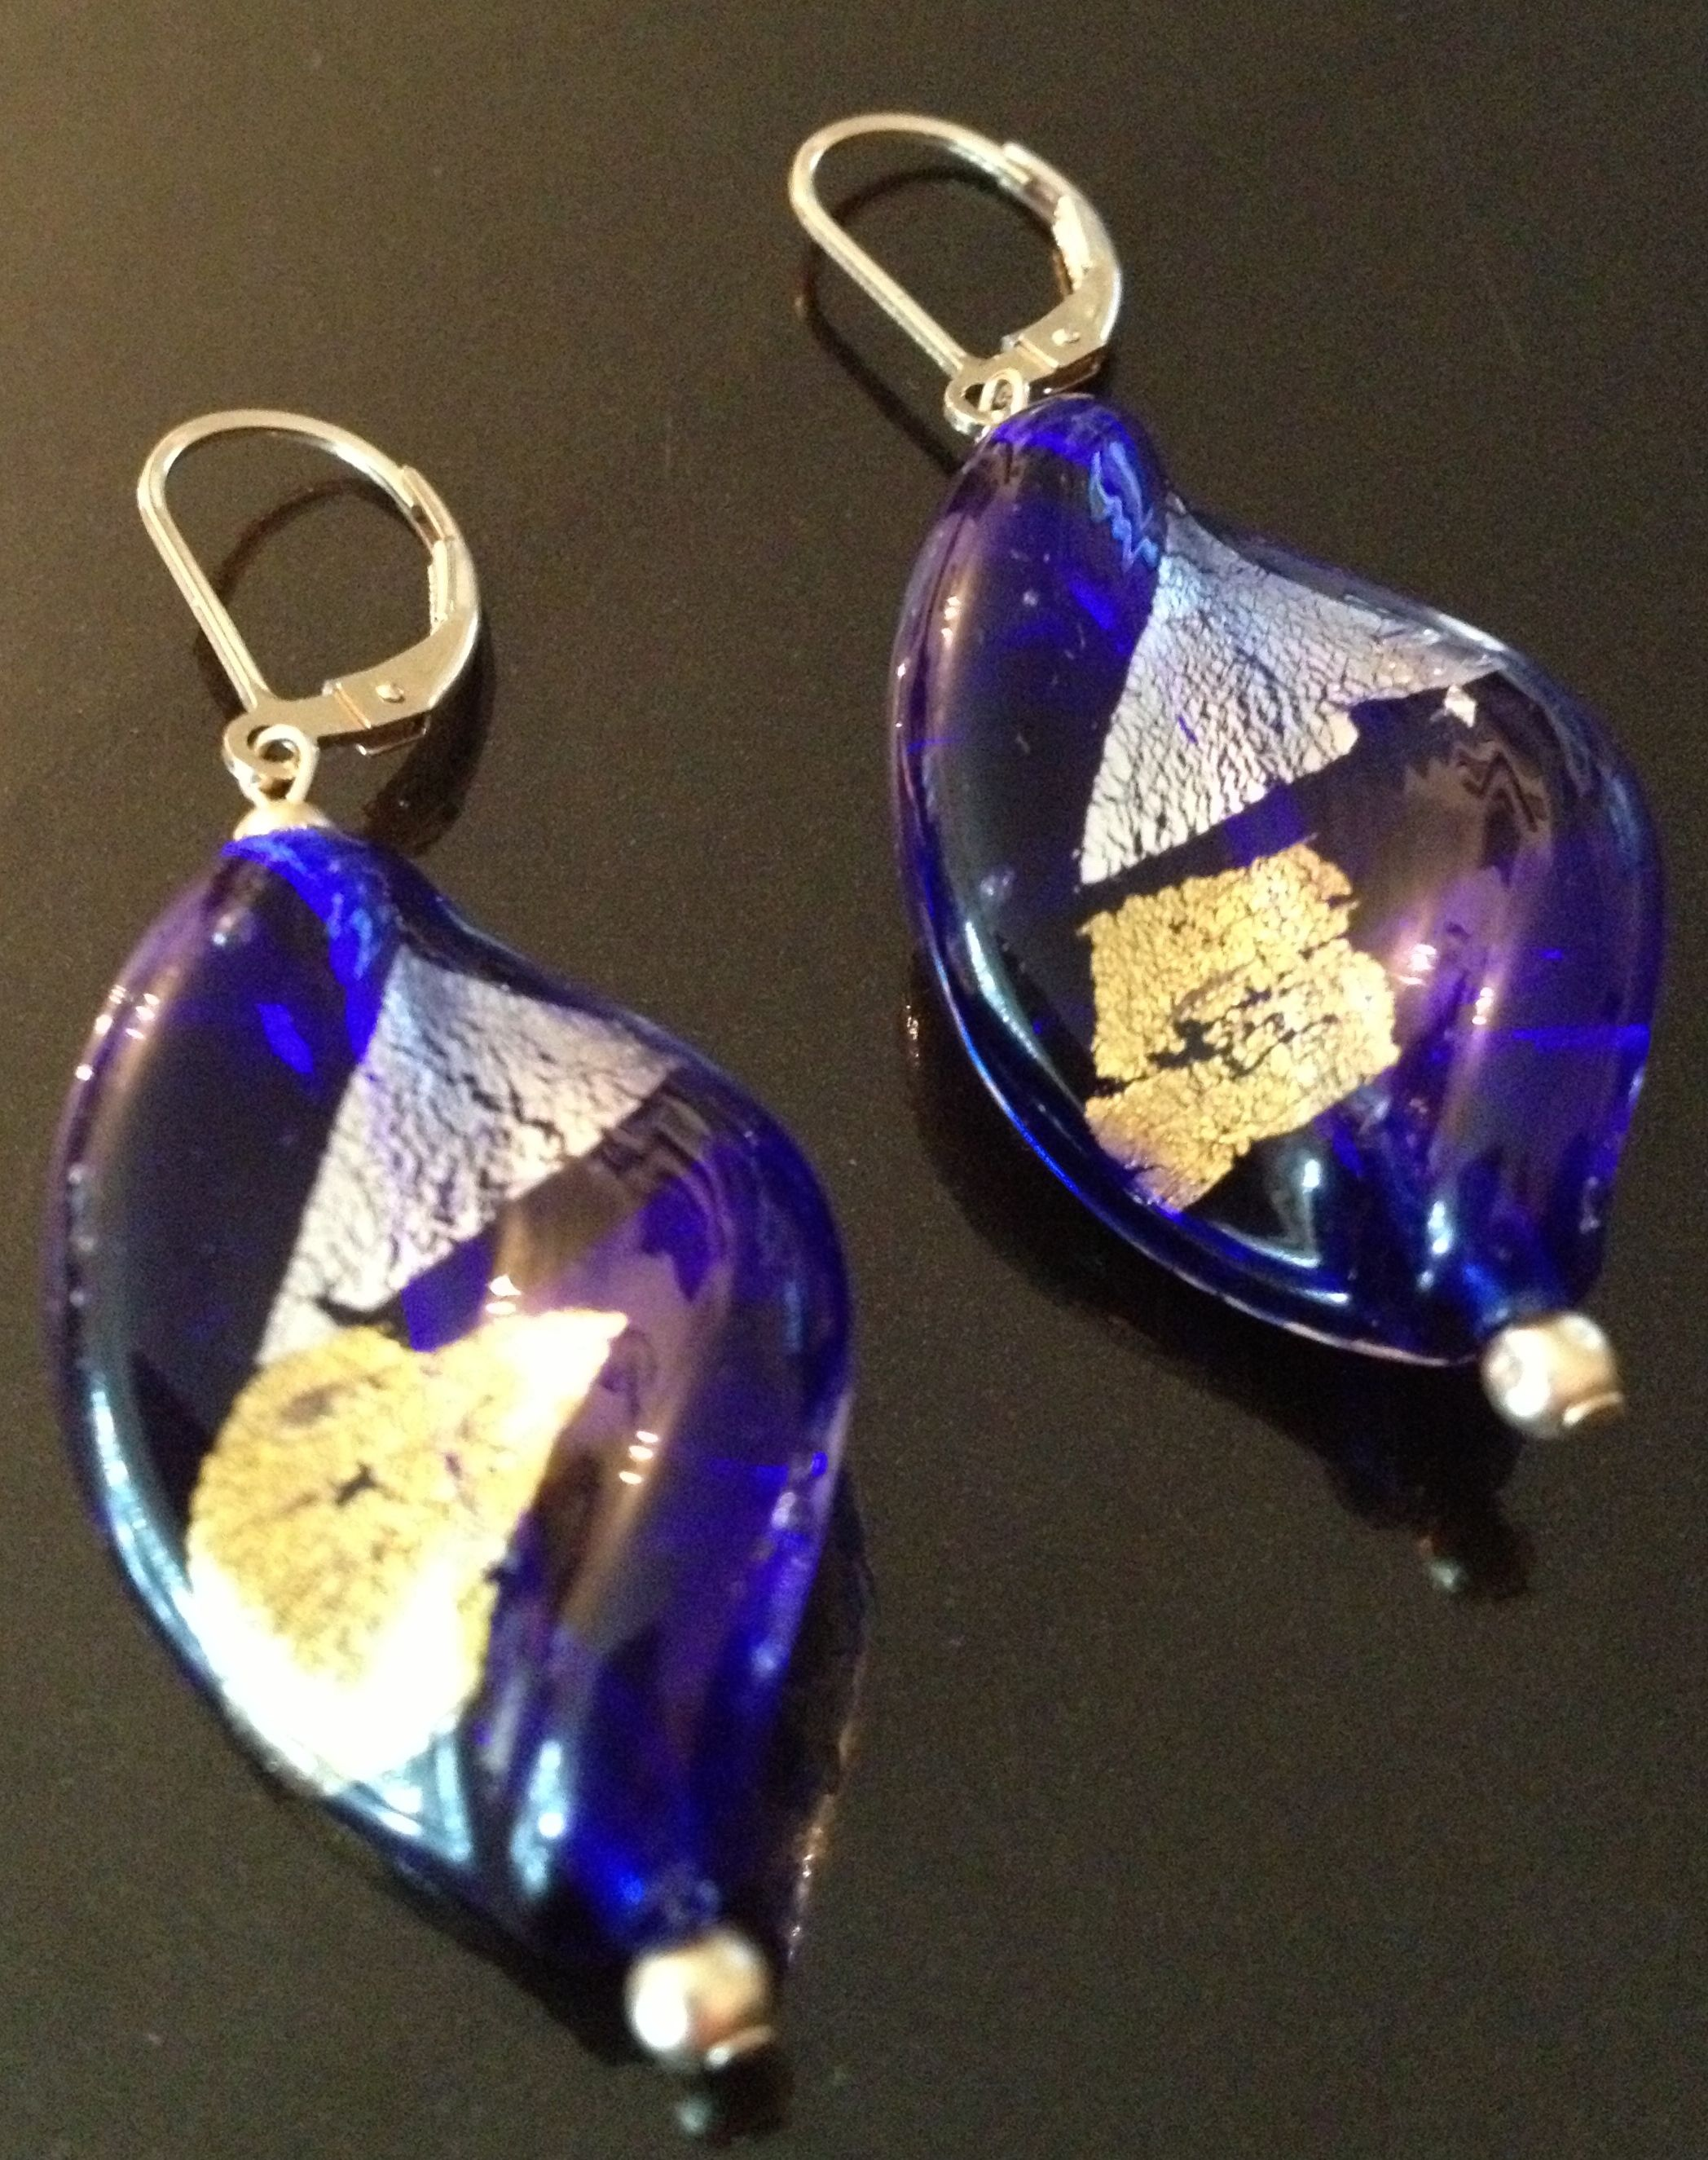 Cobalt Murano Glass Twist Earrings by Ametista Designs